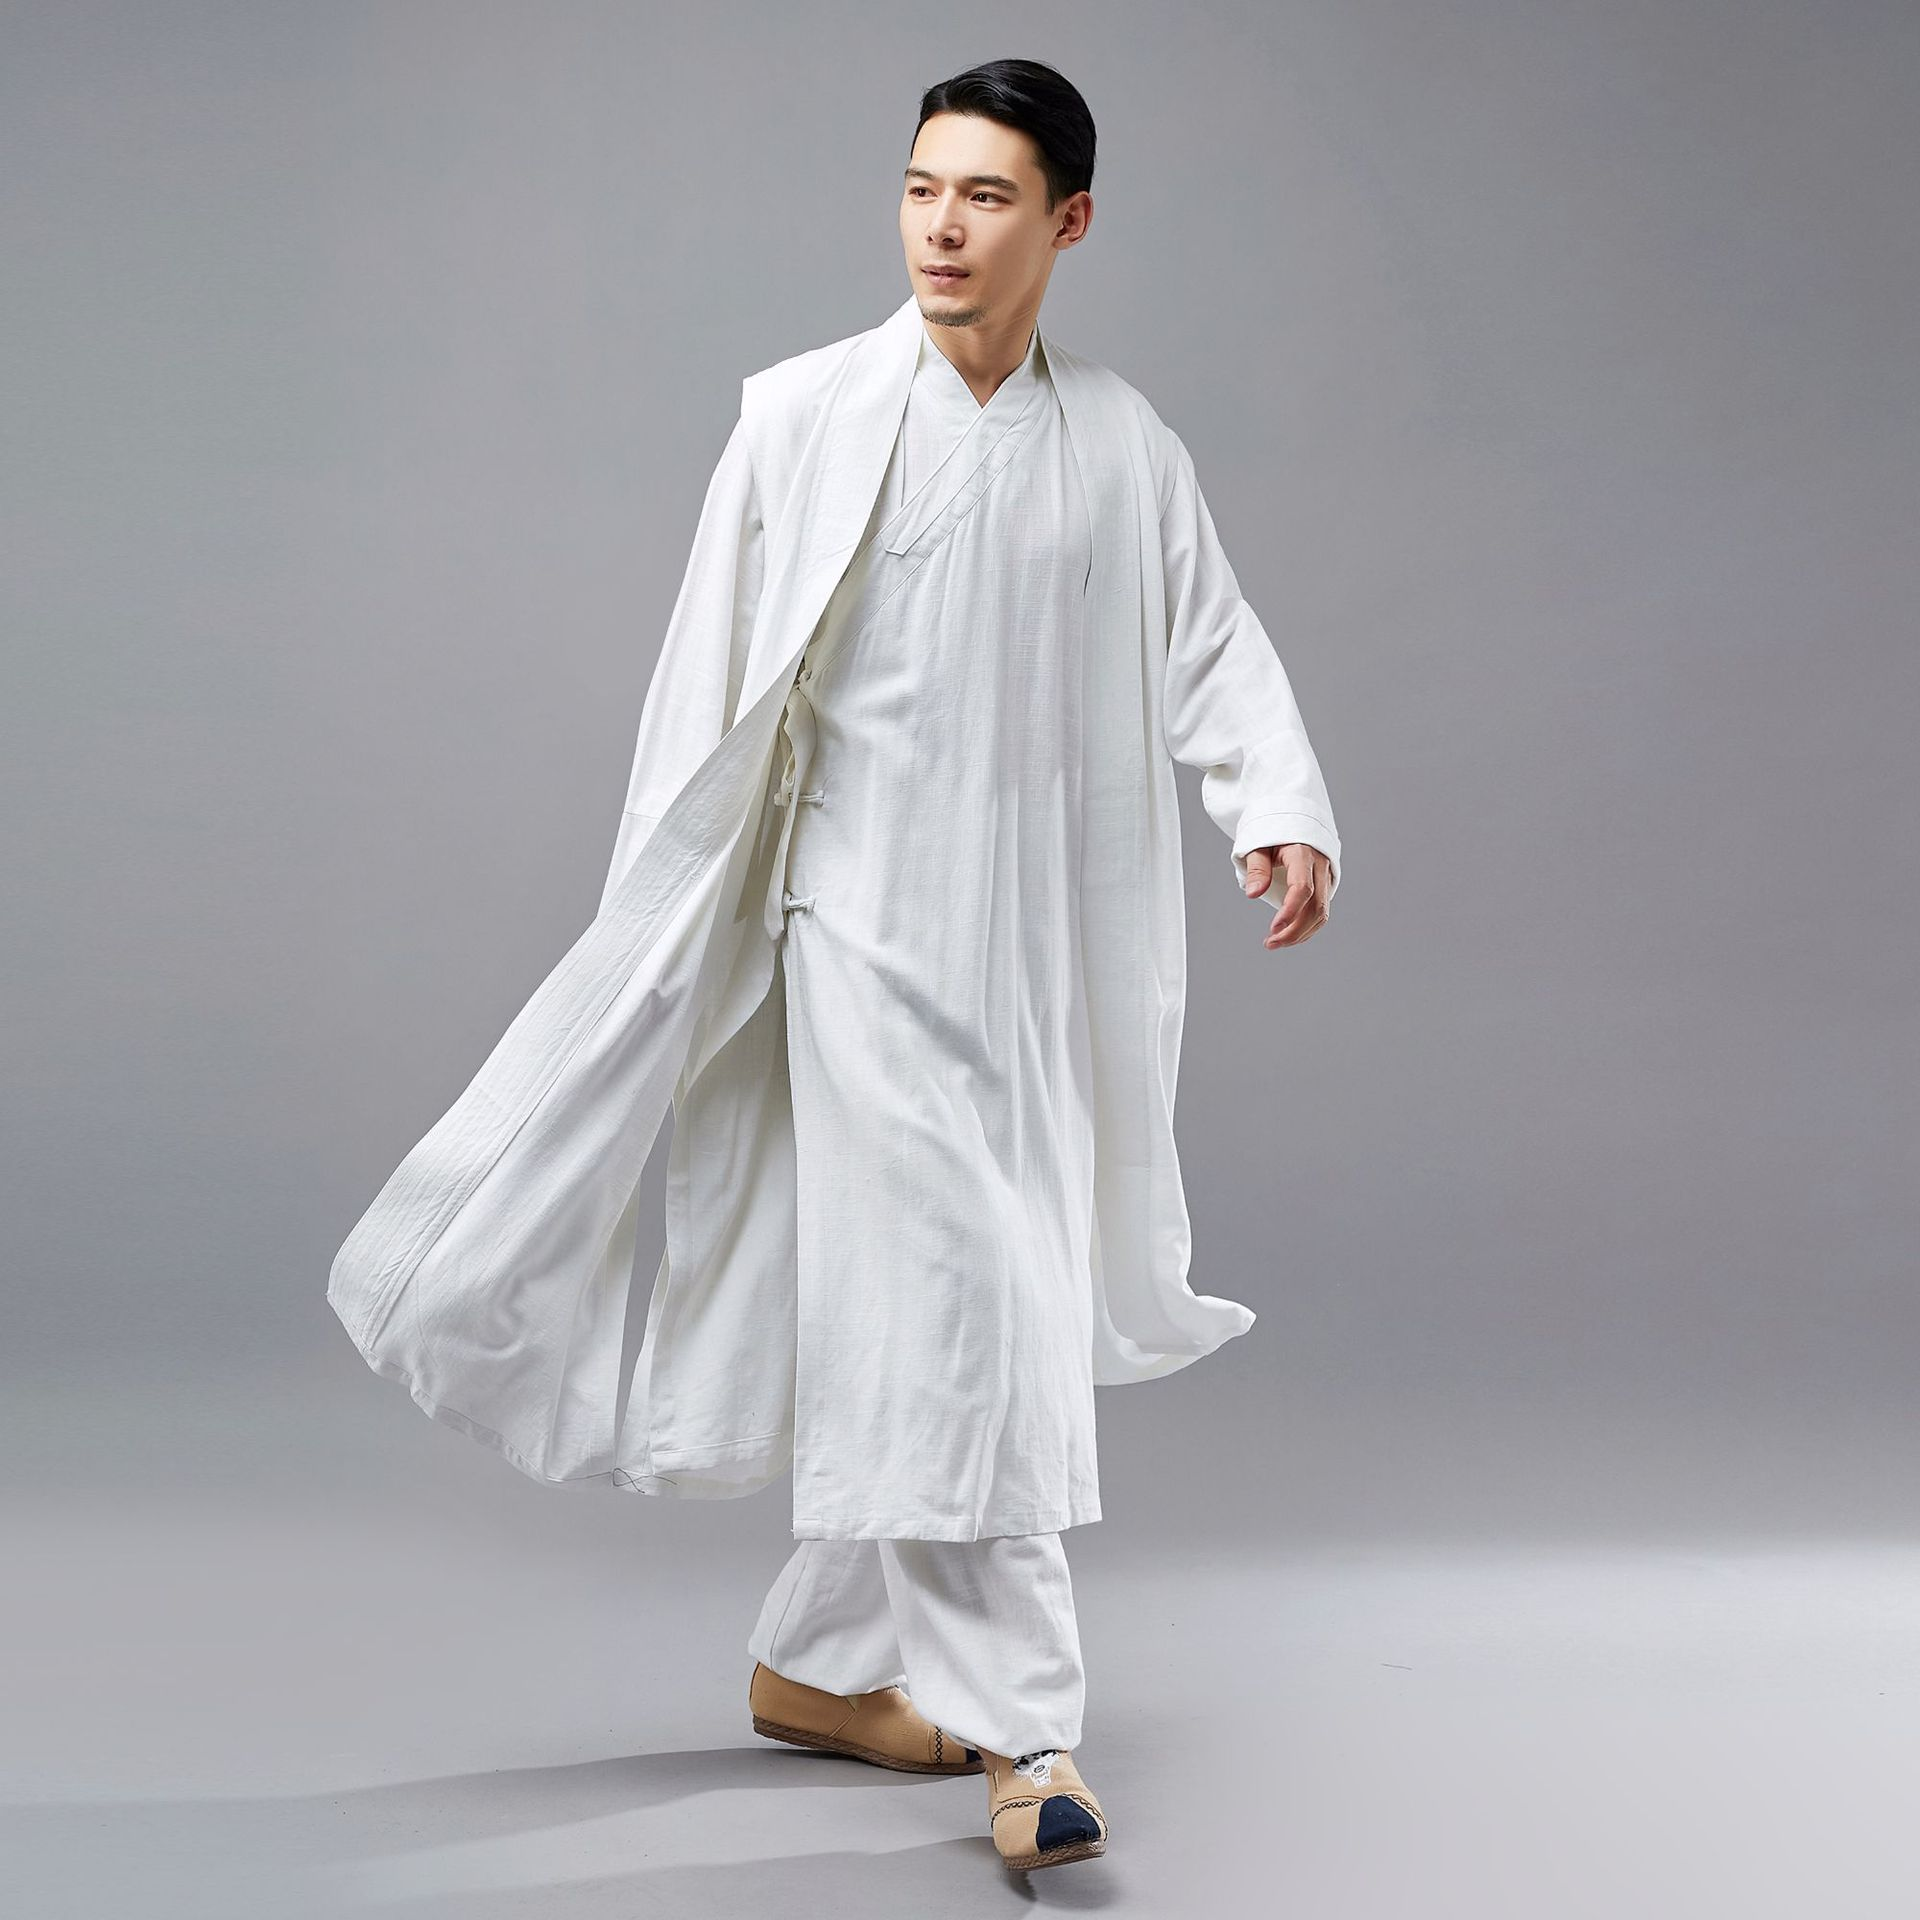 Men Long Vest Waistcoat Chinese Style Kung Fu Robe Costumes Male Fashion Casual Sleeveless Cardigan Coat Solid Color Overcoat